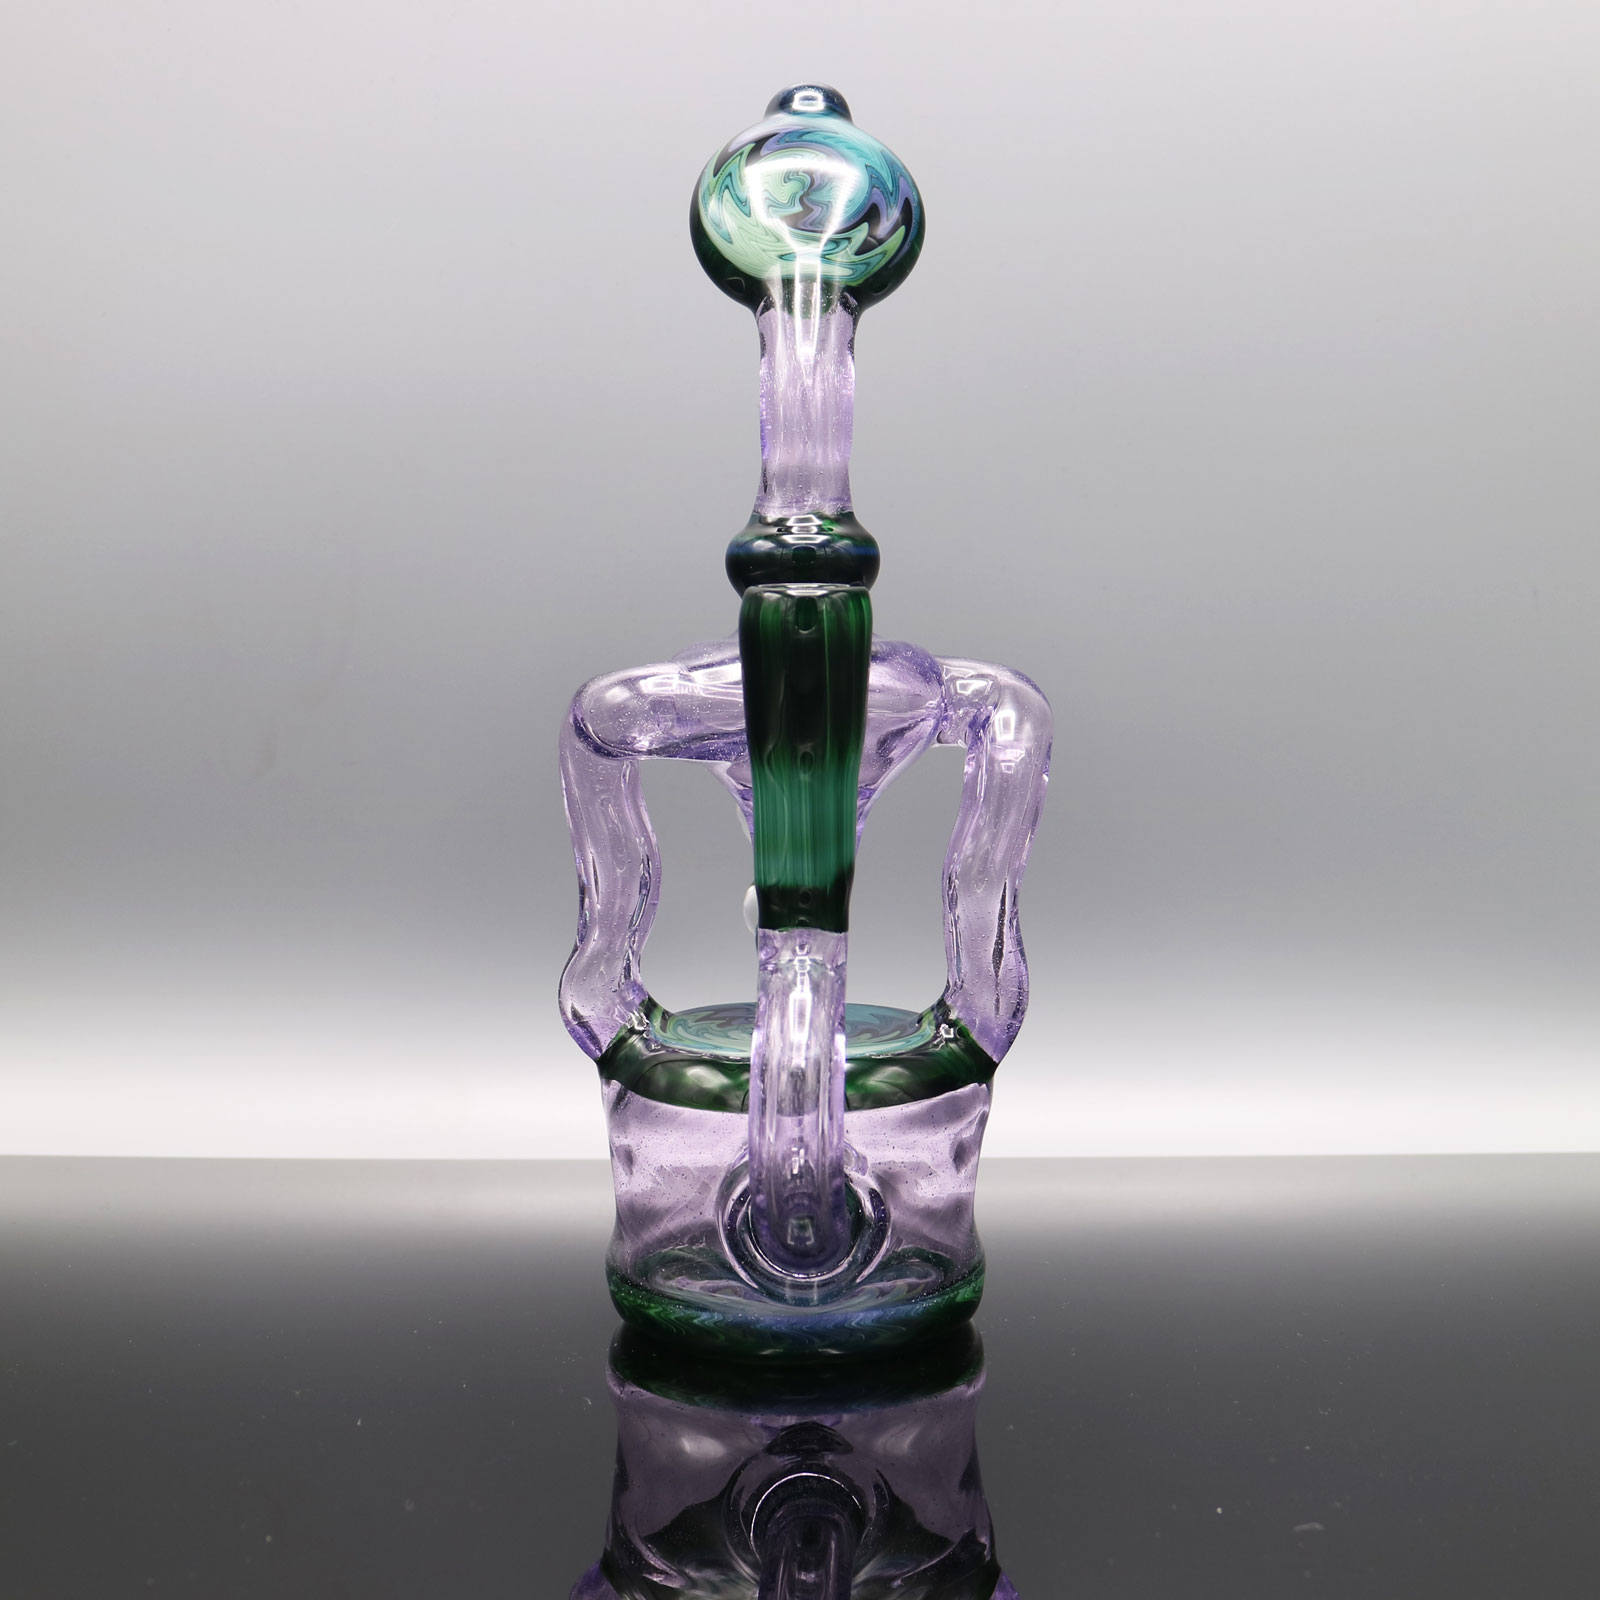 Chappell Glass – Double Uptake Recycler